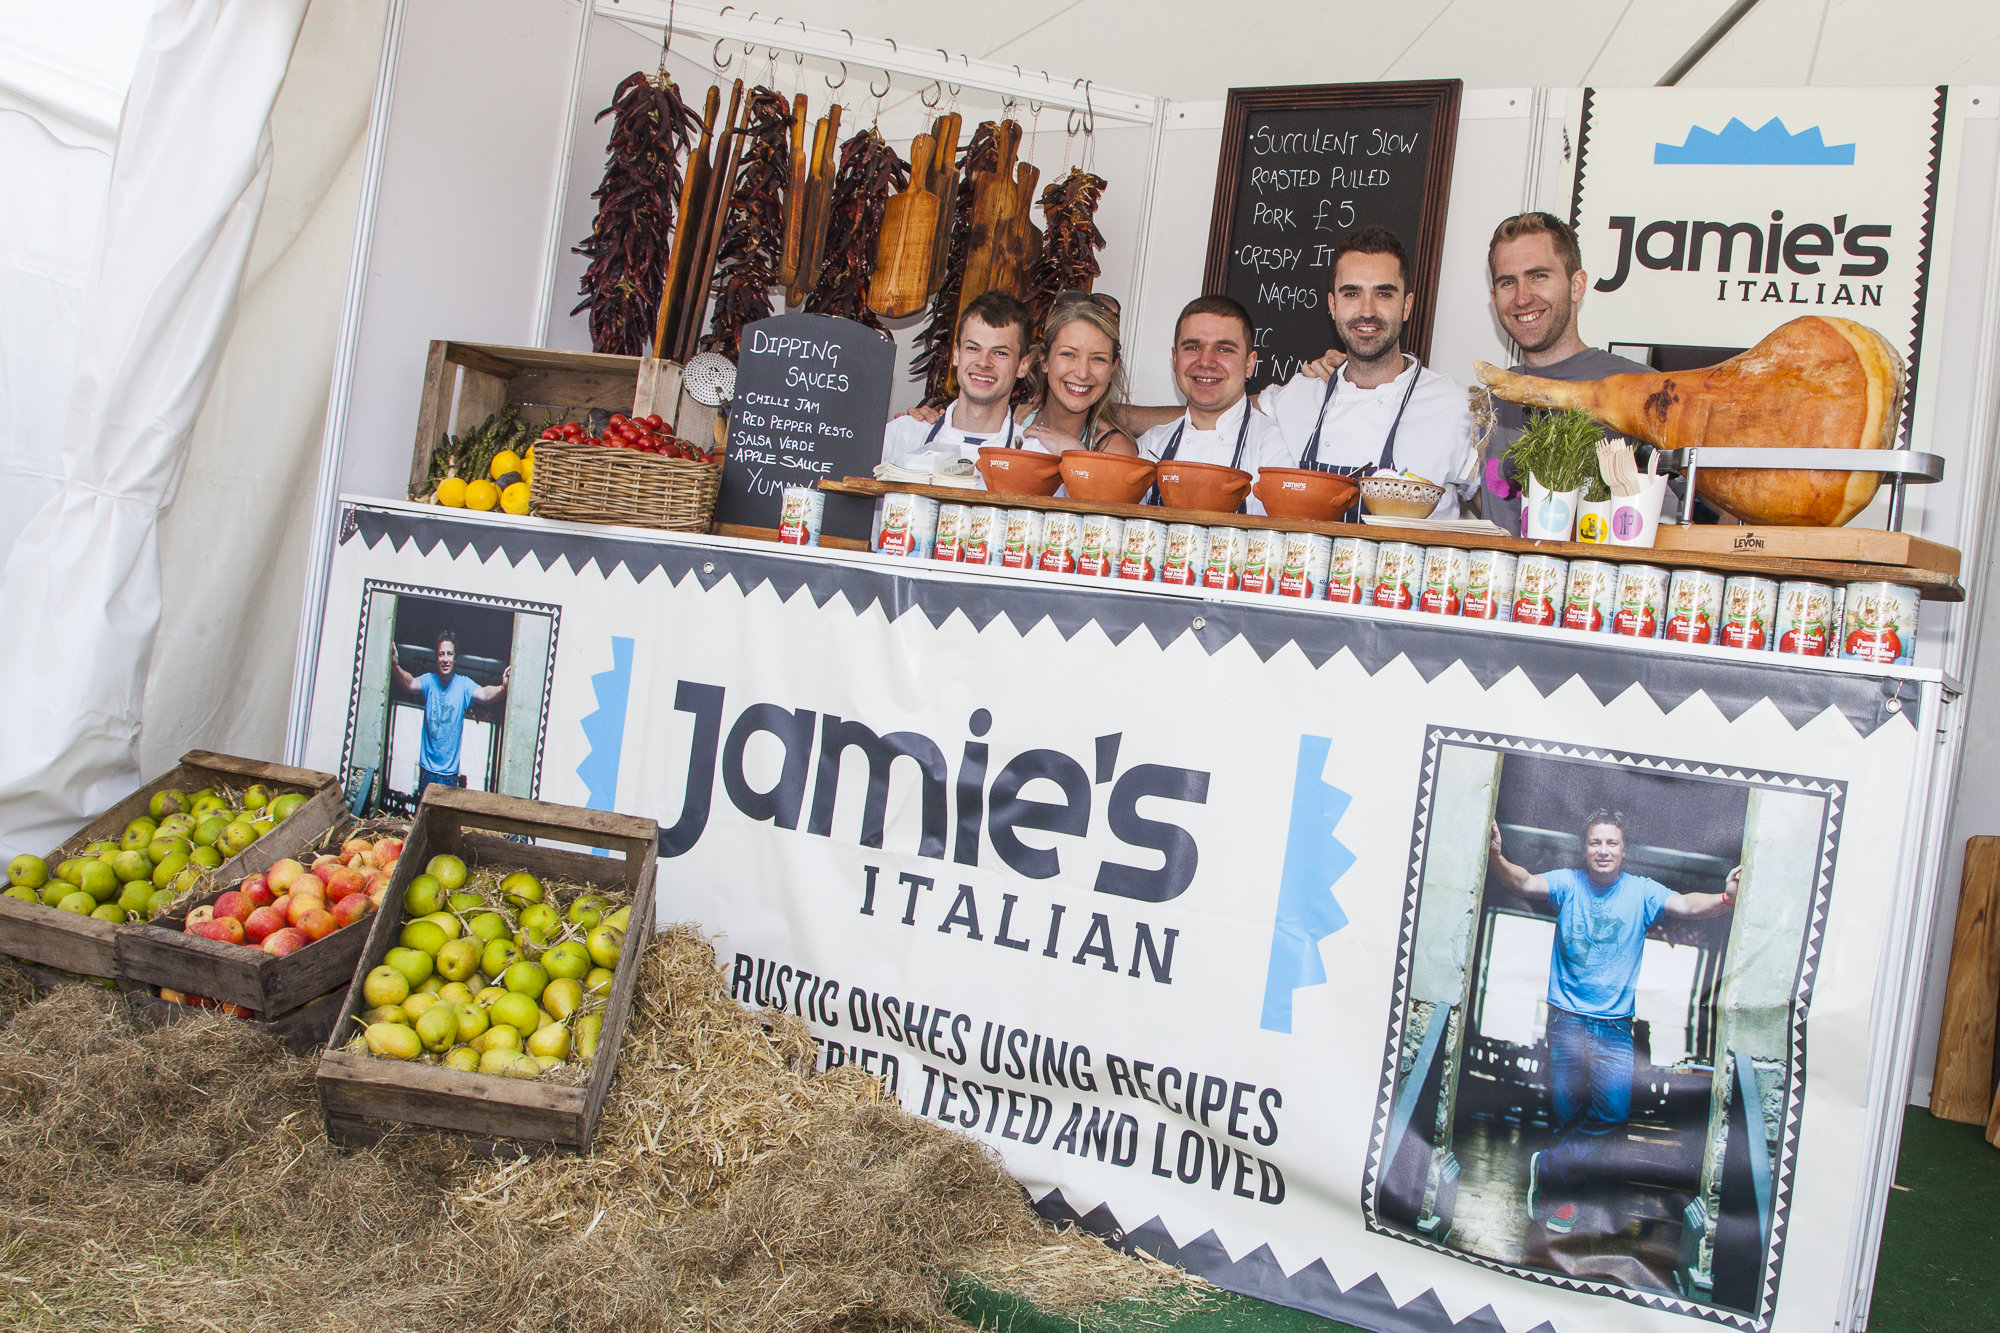 Jamie's Italian popped-up in Brighton and London